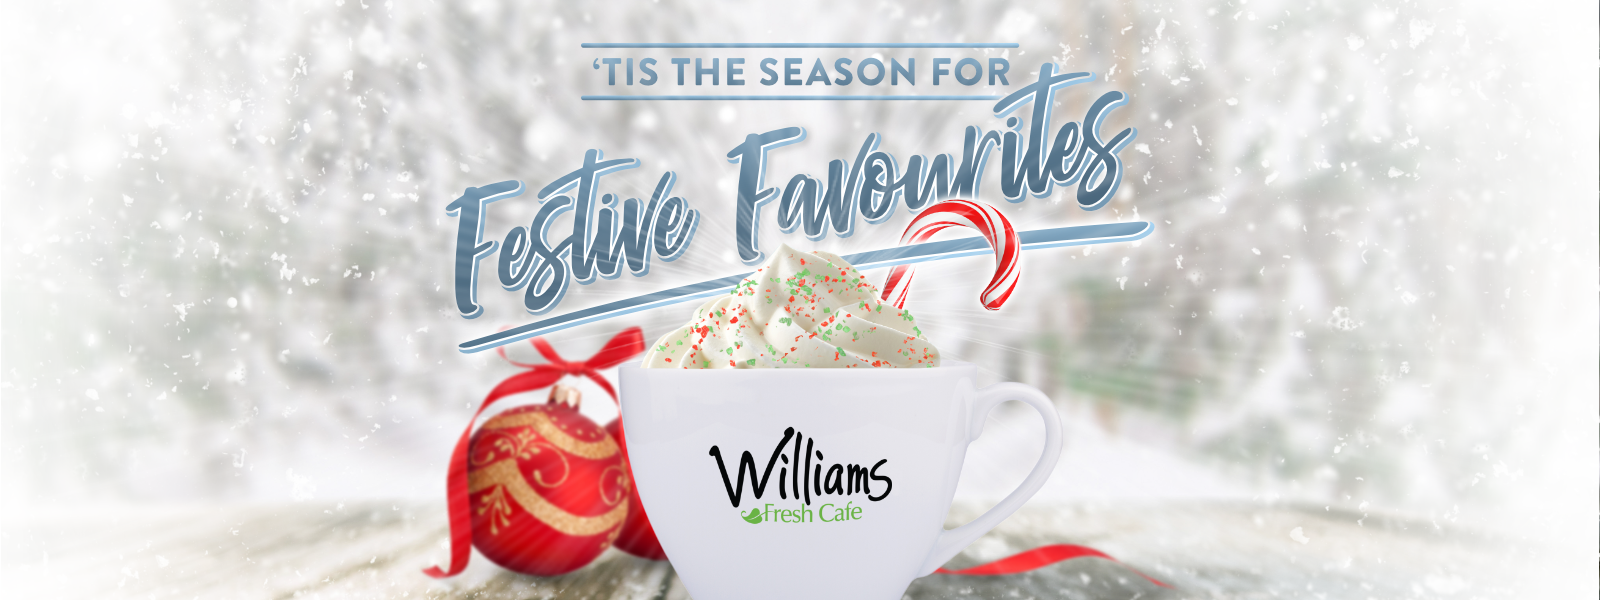 Festive Favourites 2019 – Website Desktop (1600×600) V2.2 FA